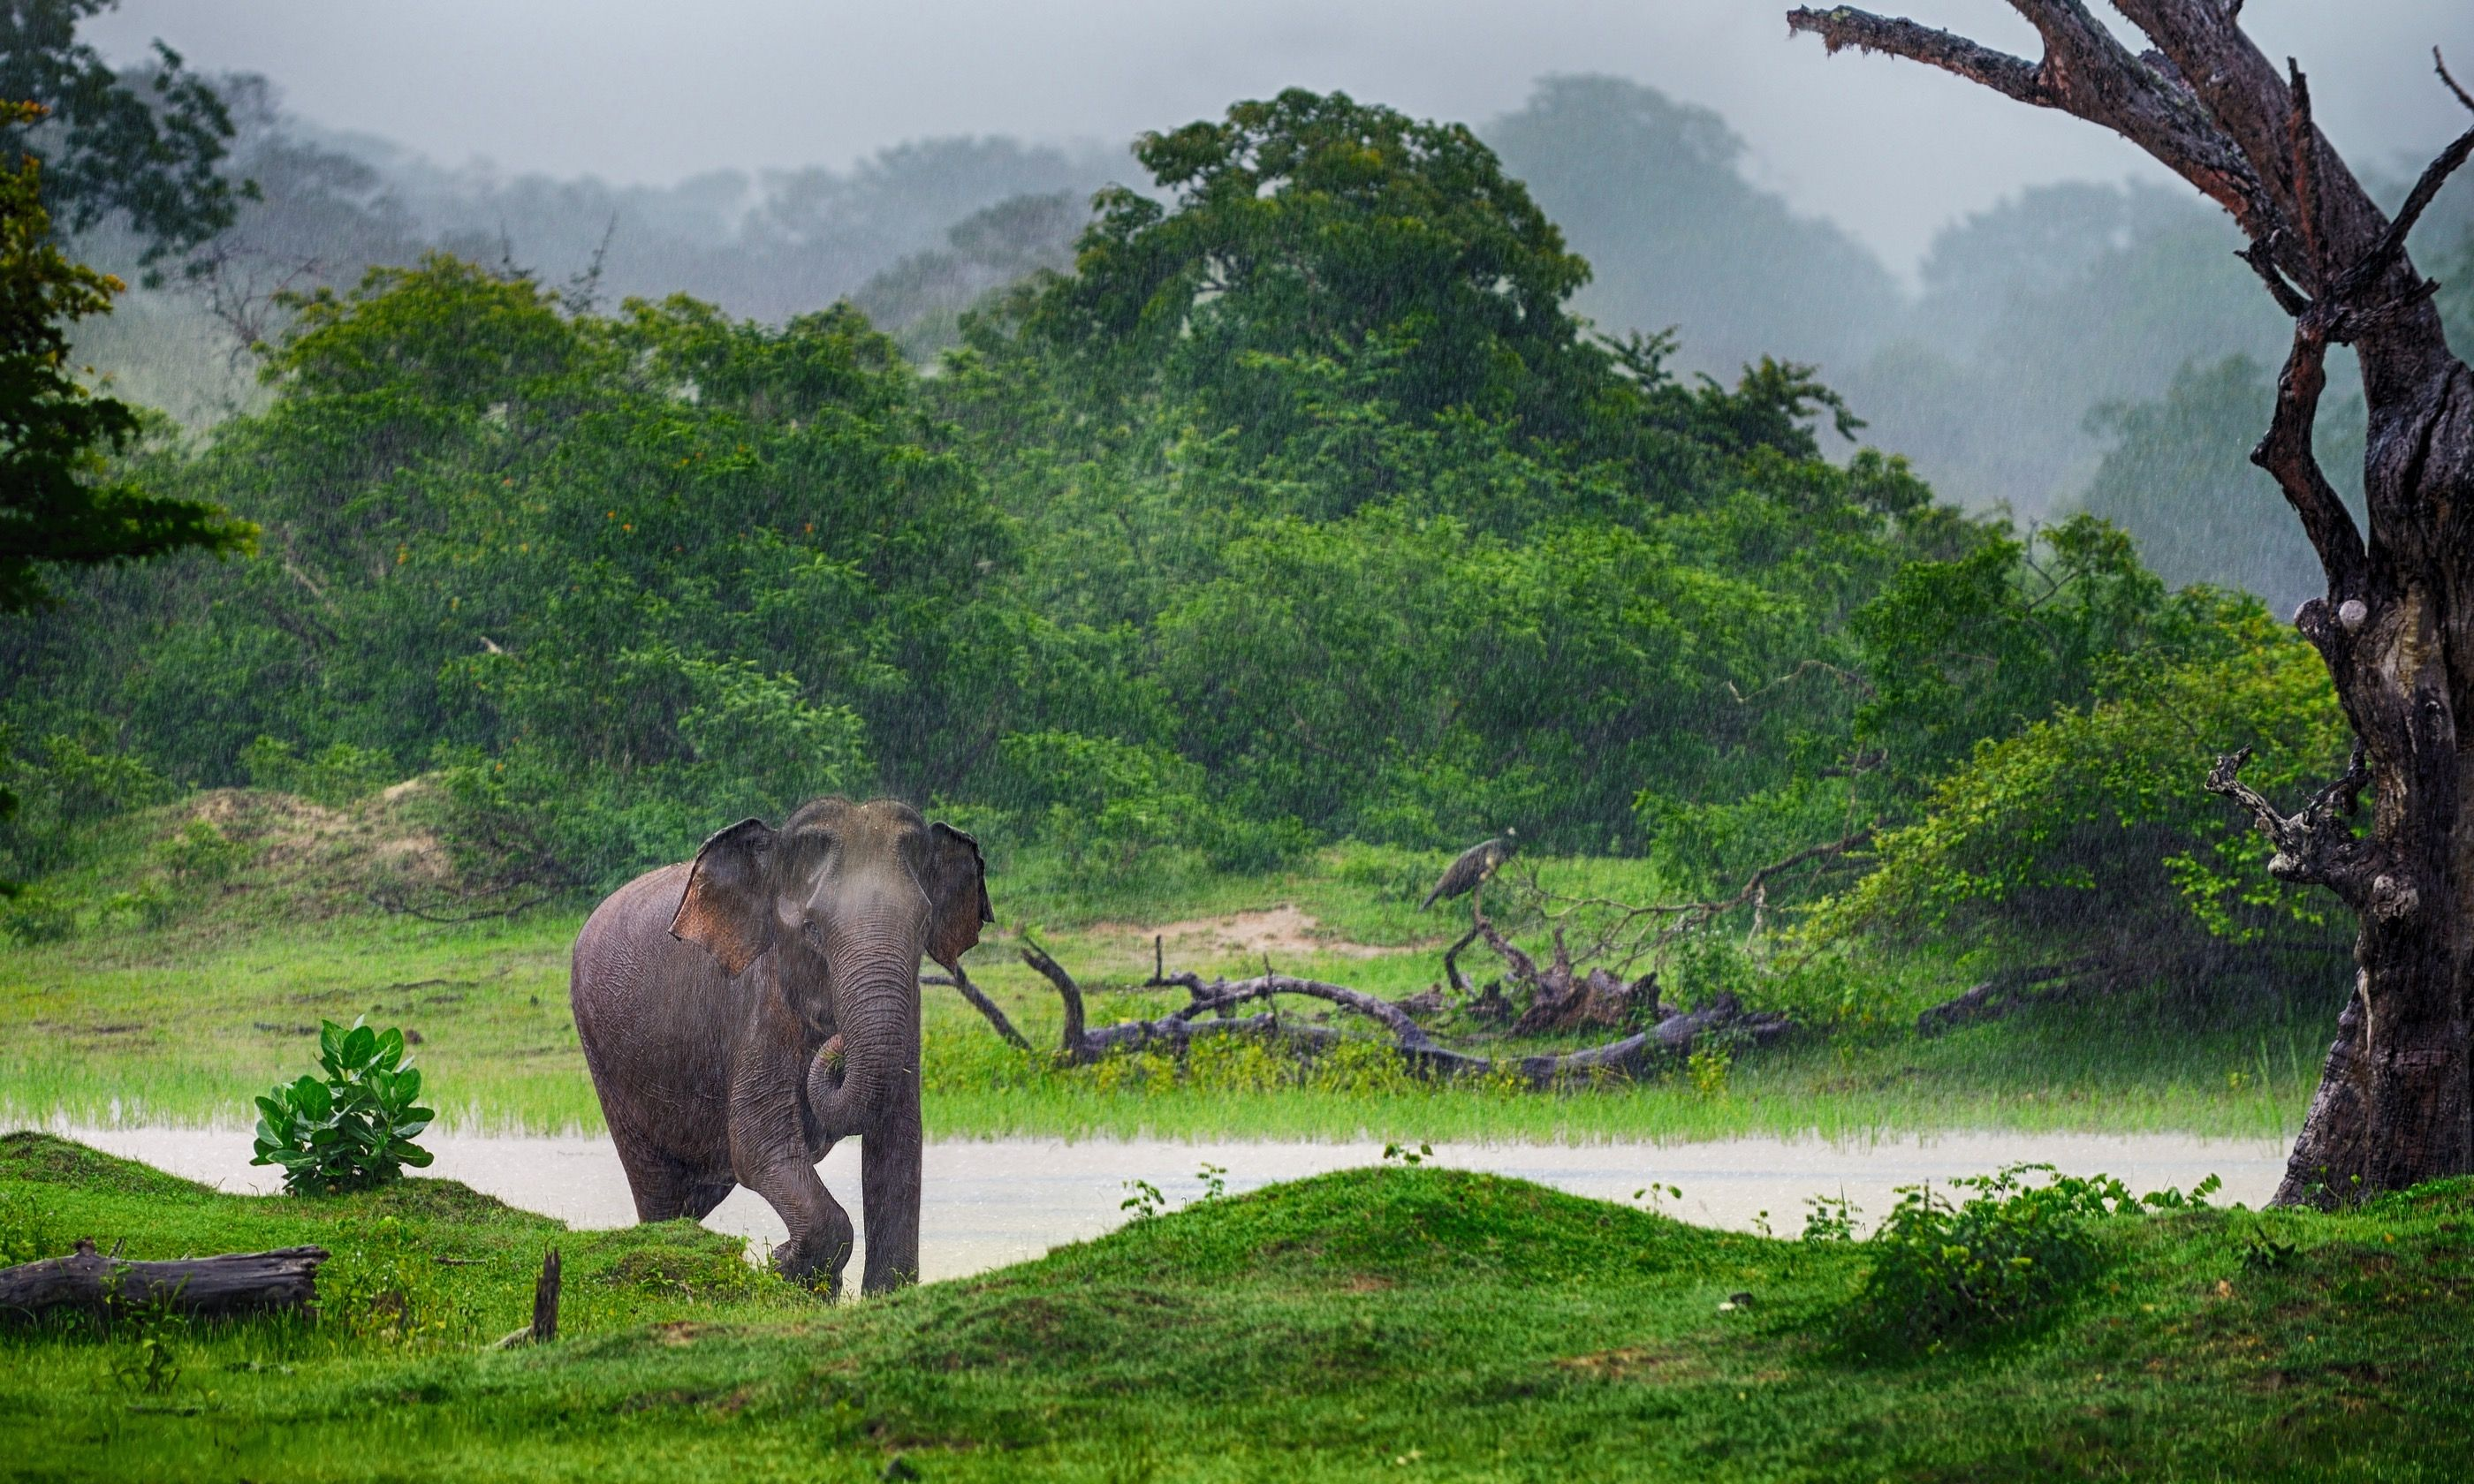 Elephant in the wilds of Sri Lanka (Shutterstock.com)